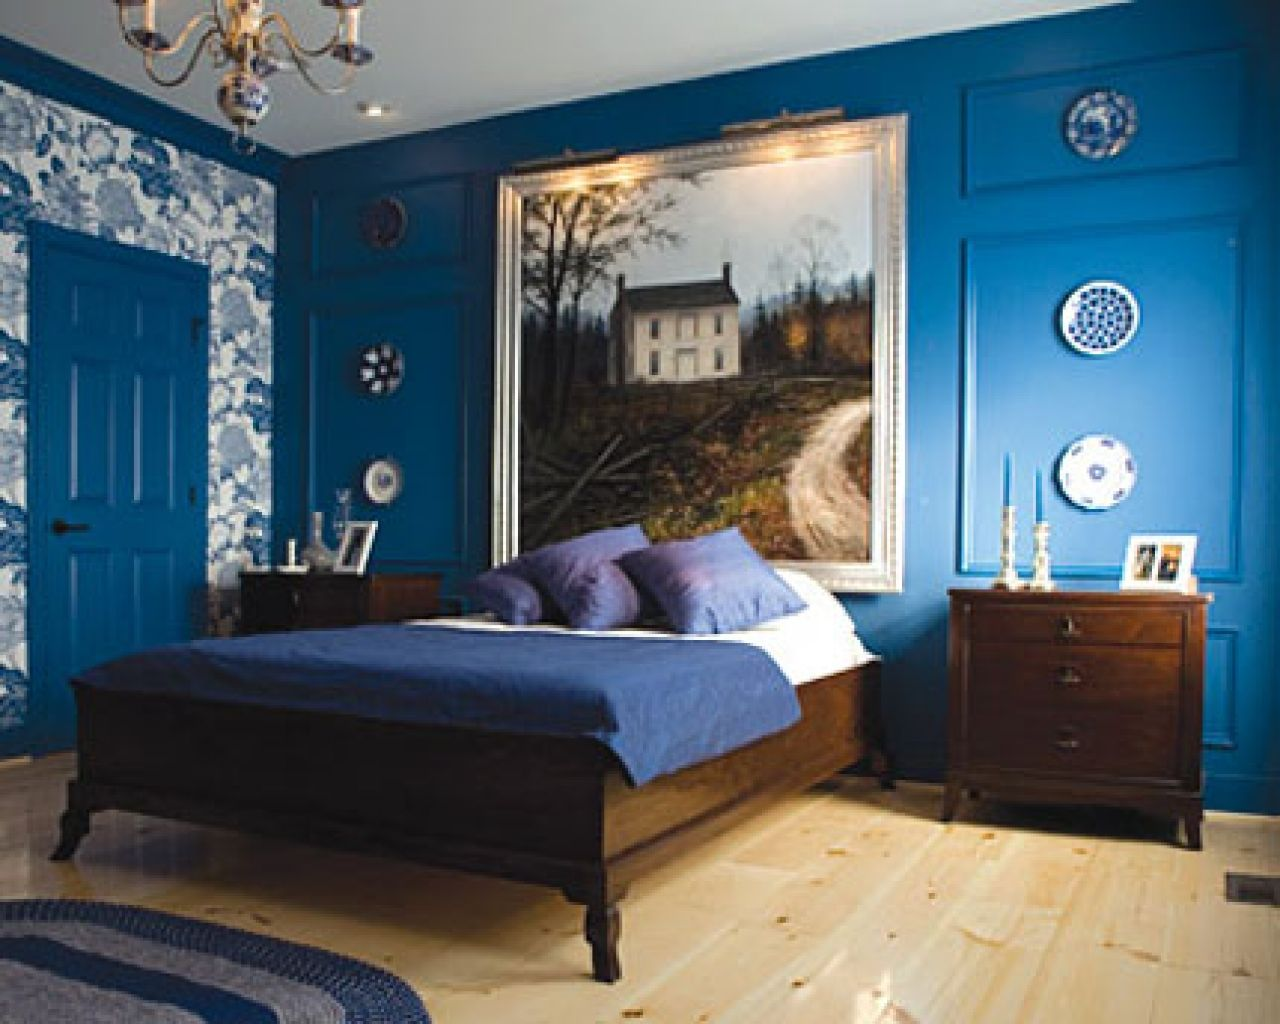 Blue bedroom design ideas - Bedroom Painting Design Ideas Pretty Natural Bedroom Paint Ideas Cute Blue Wall Idp Interior Design